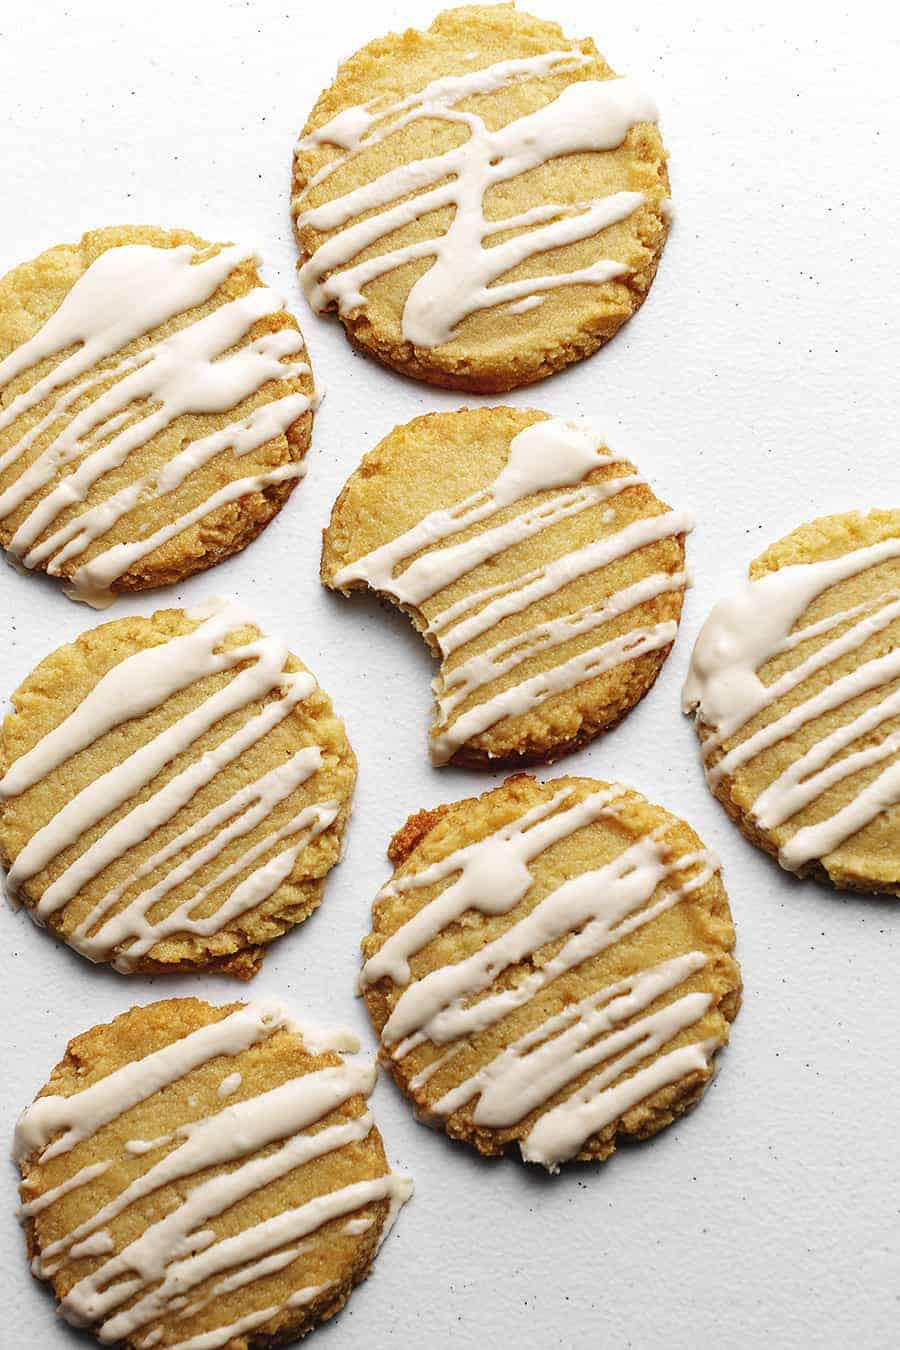 soft cookies with icing on a white background